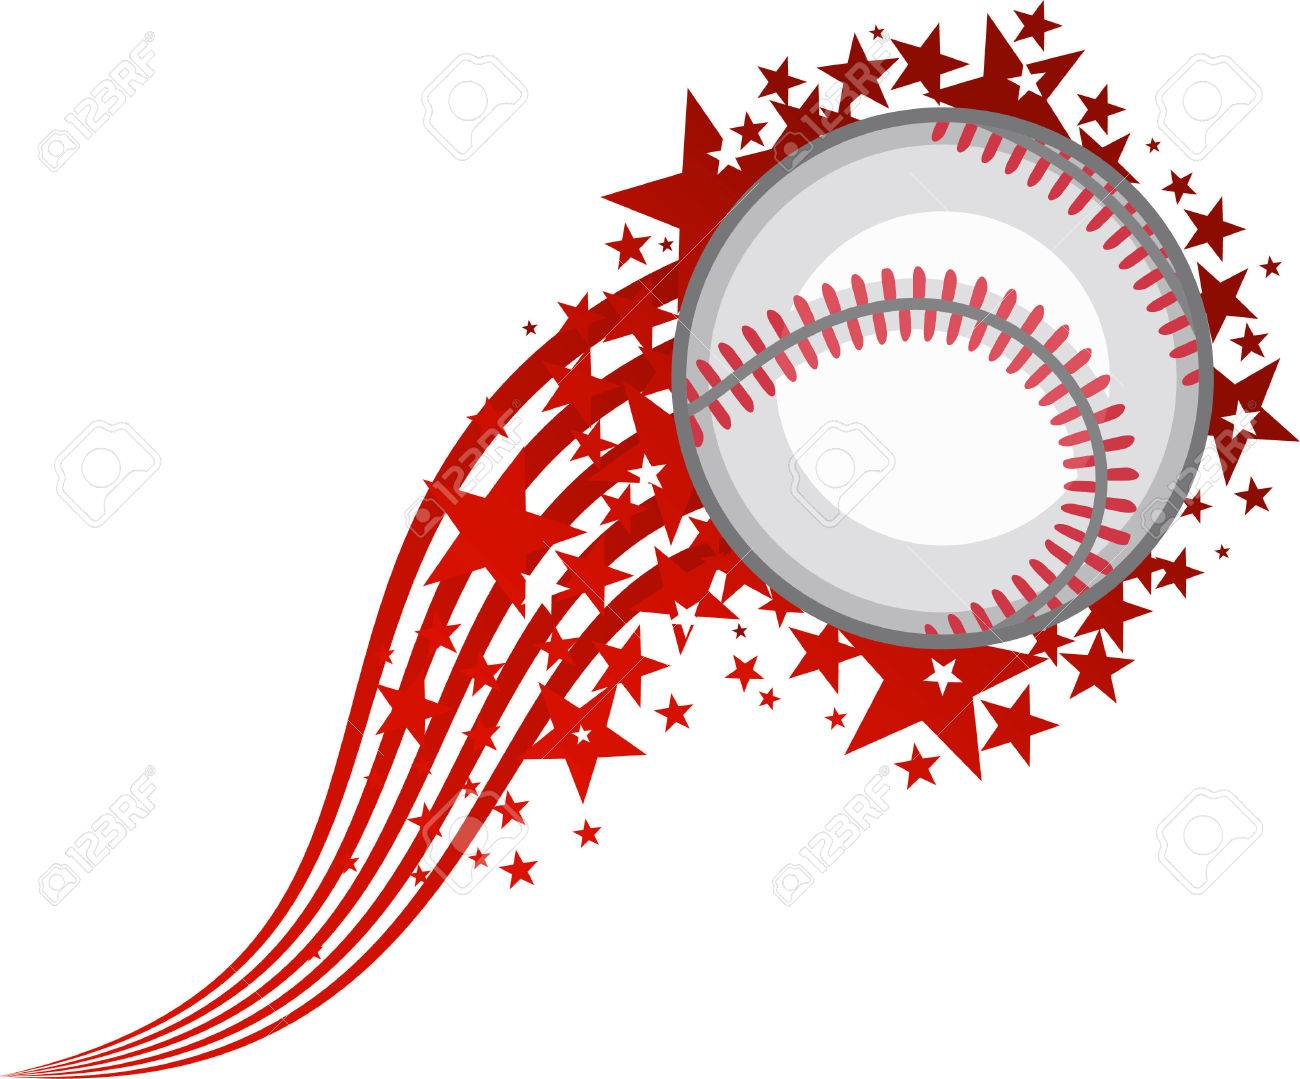 Flying baseball clipart 7 » Clipart Station.